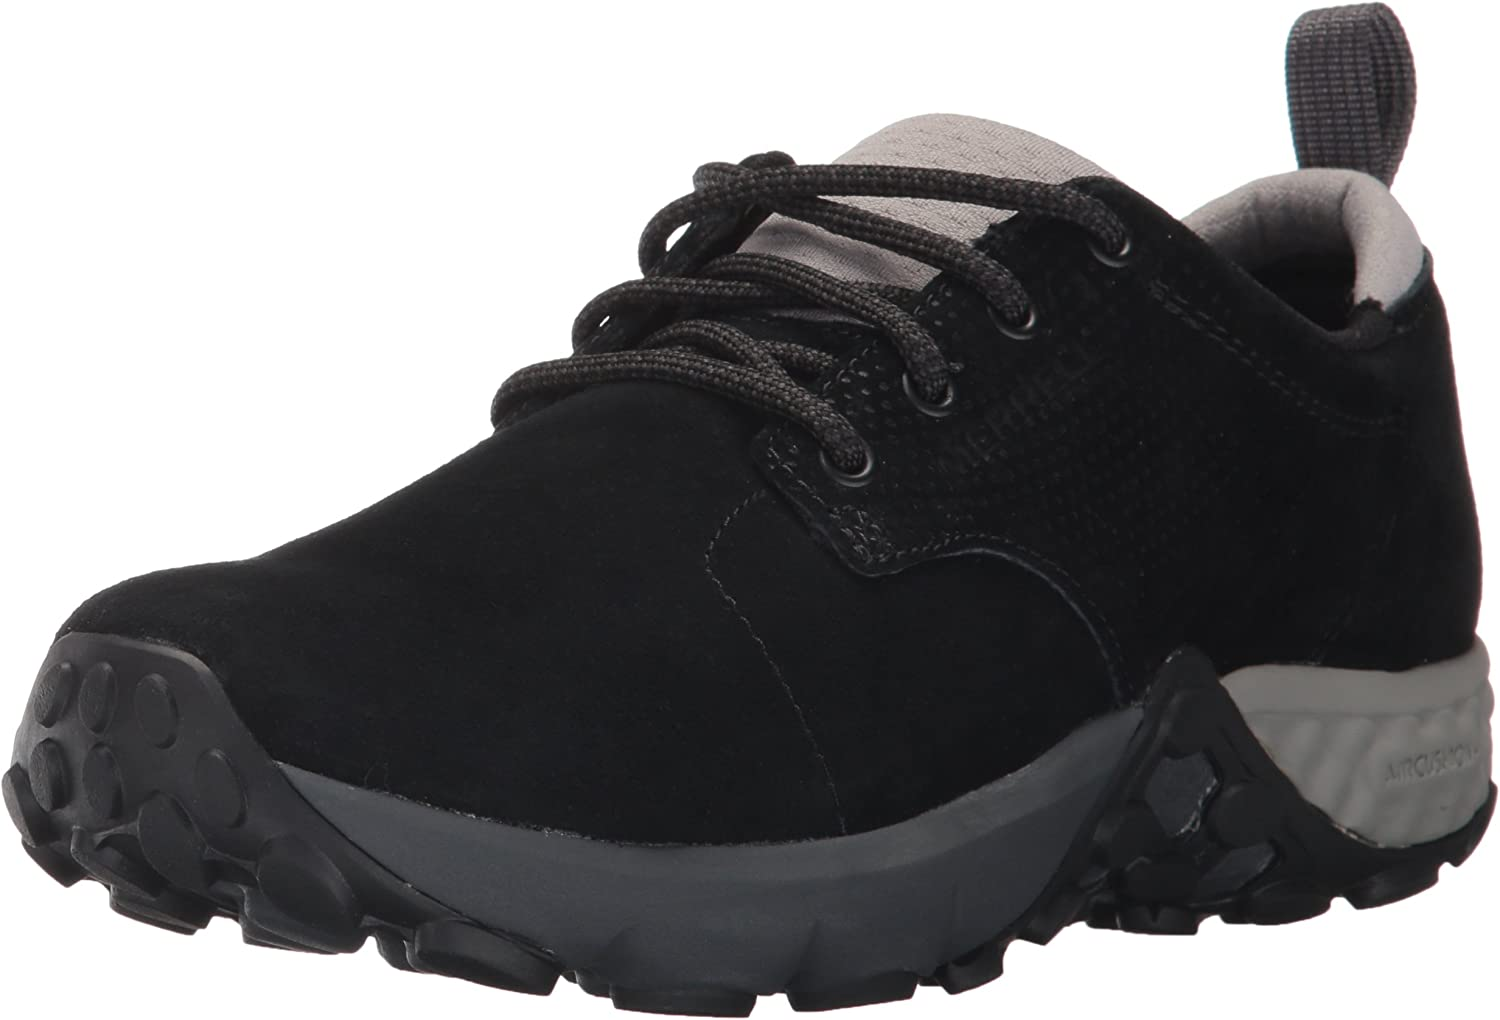 Merrell Womens Jungle Lace AC+ shoes